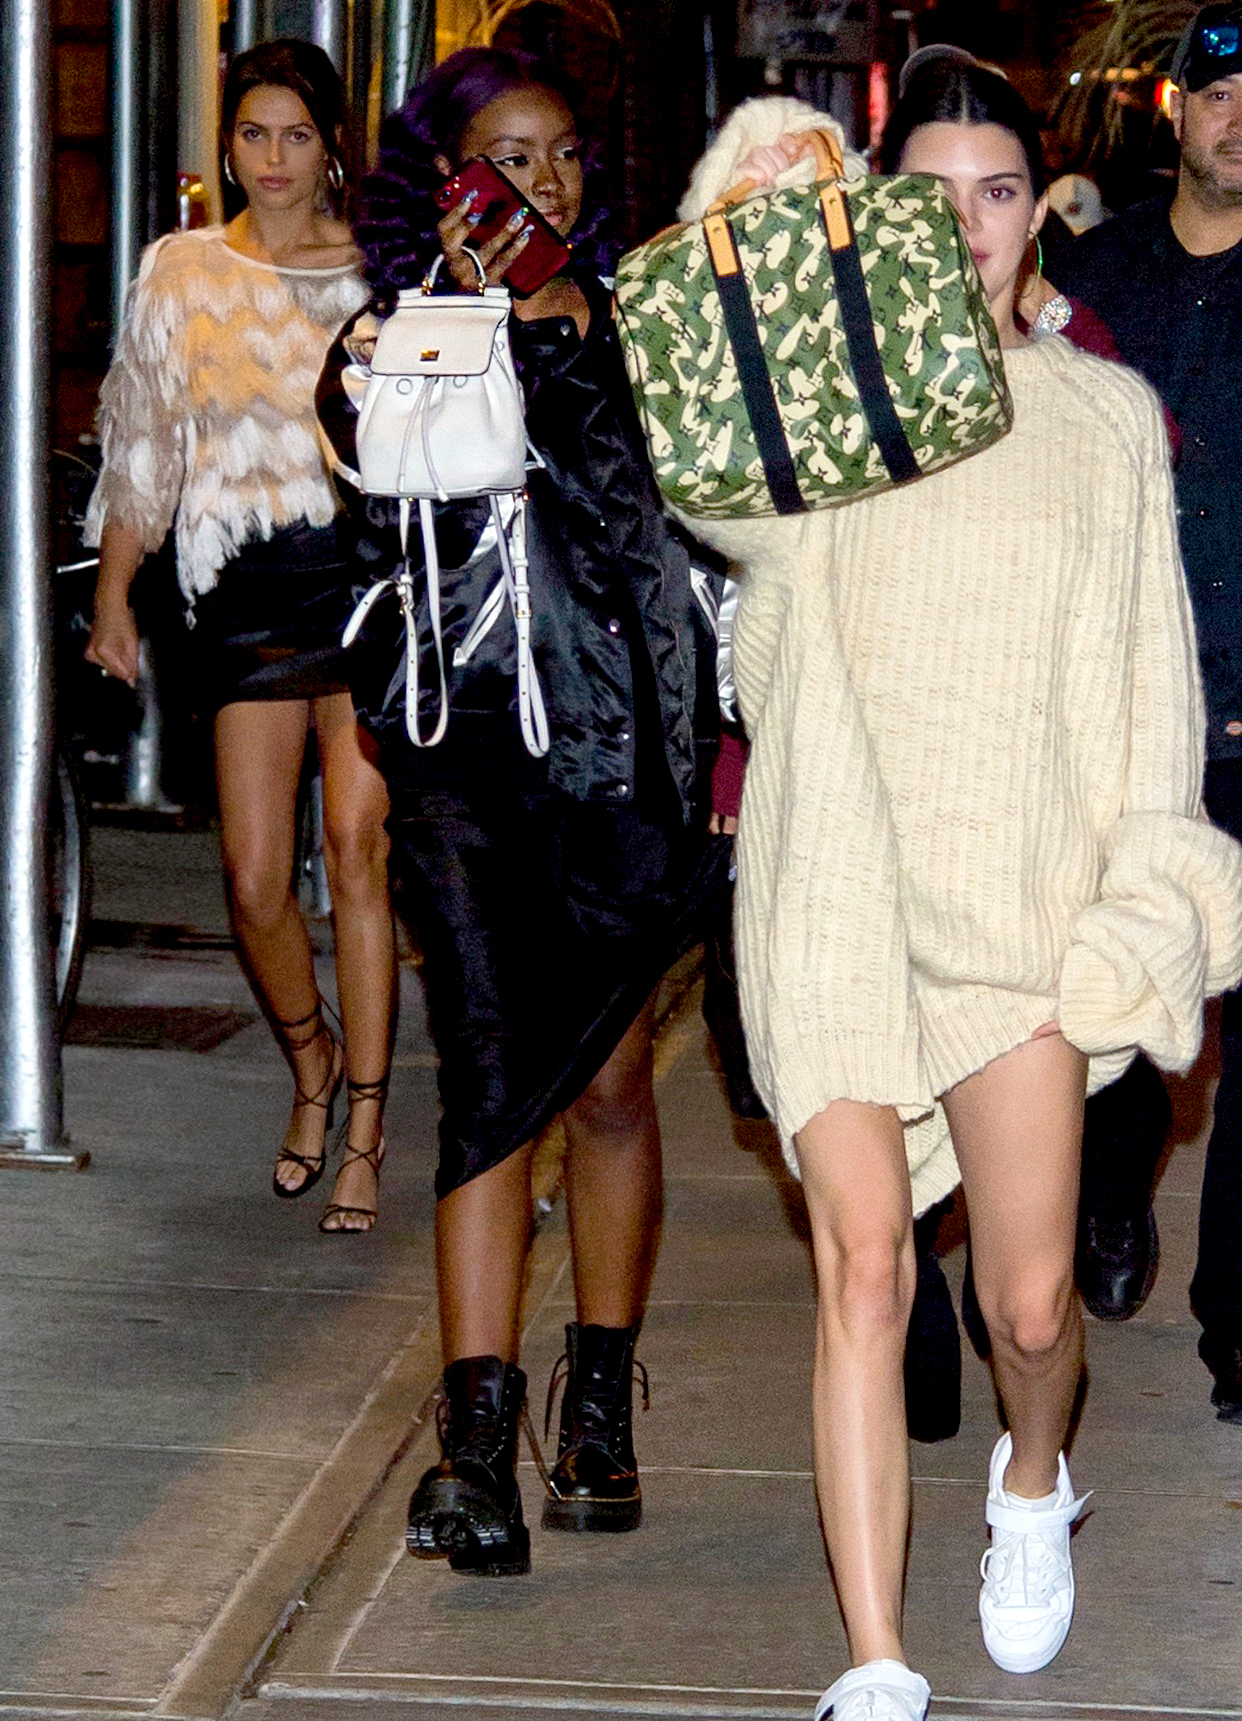 Kendall Jenner headed to dinner at Carbone with Brooks Nader and Justine Skye.